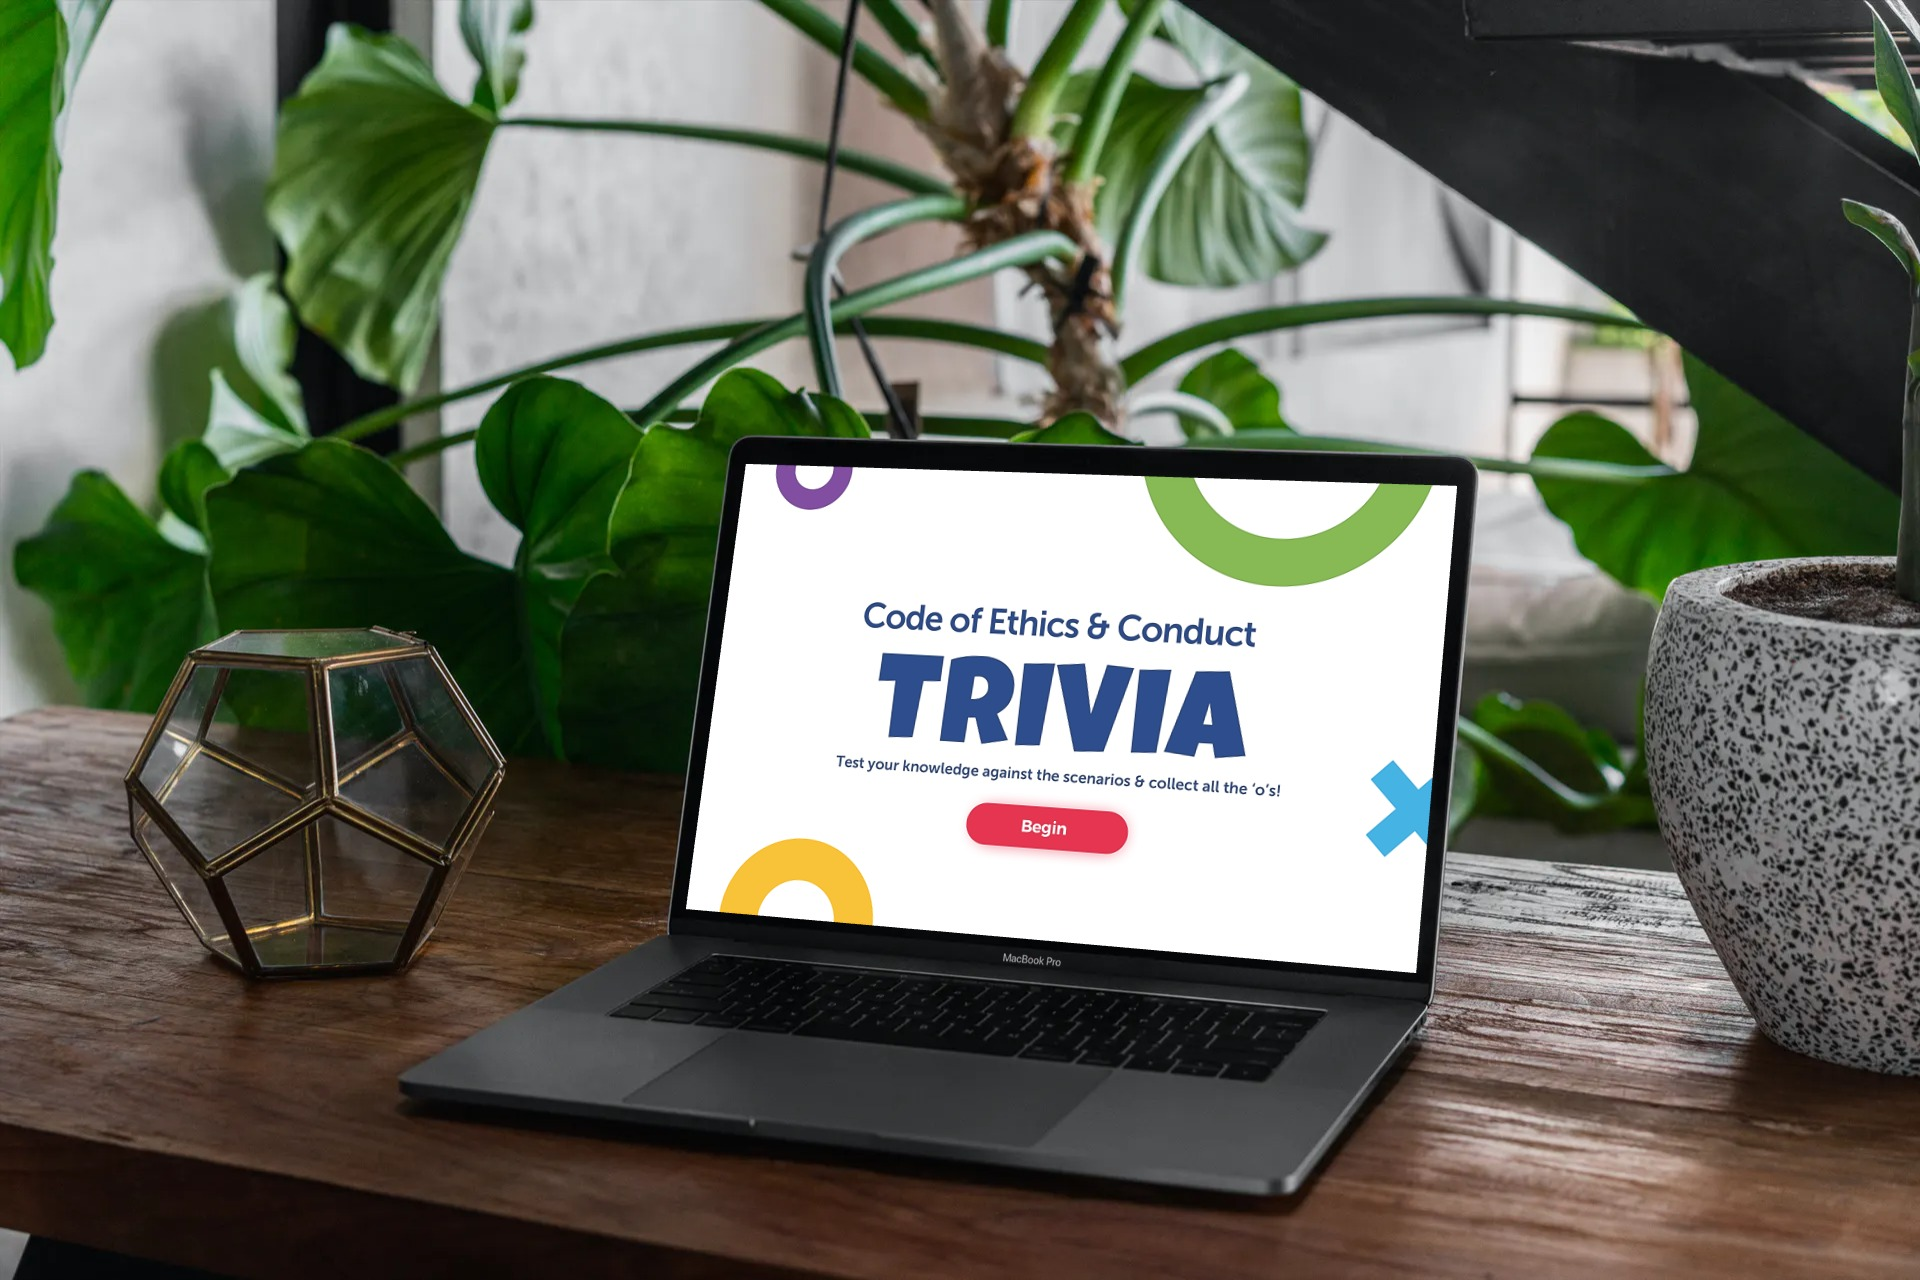 The Code of Conduct Trivia is a scenario-based elearning for Code of Ethics and Conduct in a company.